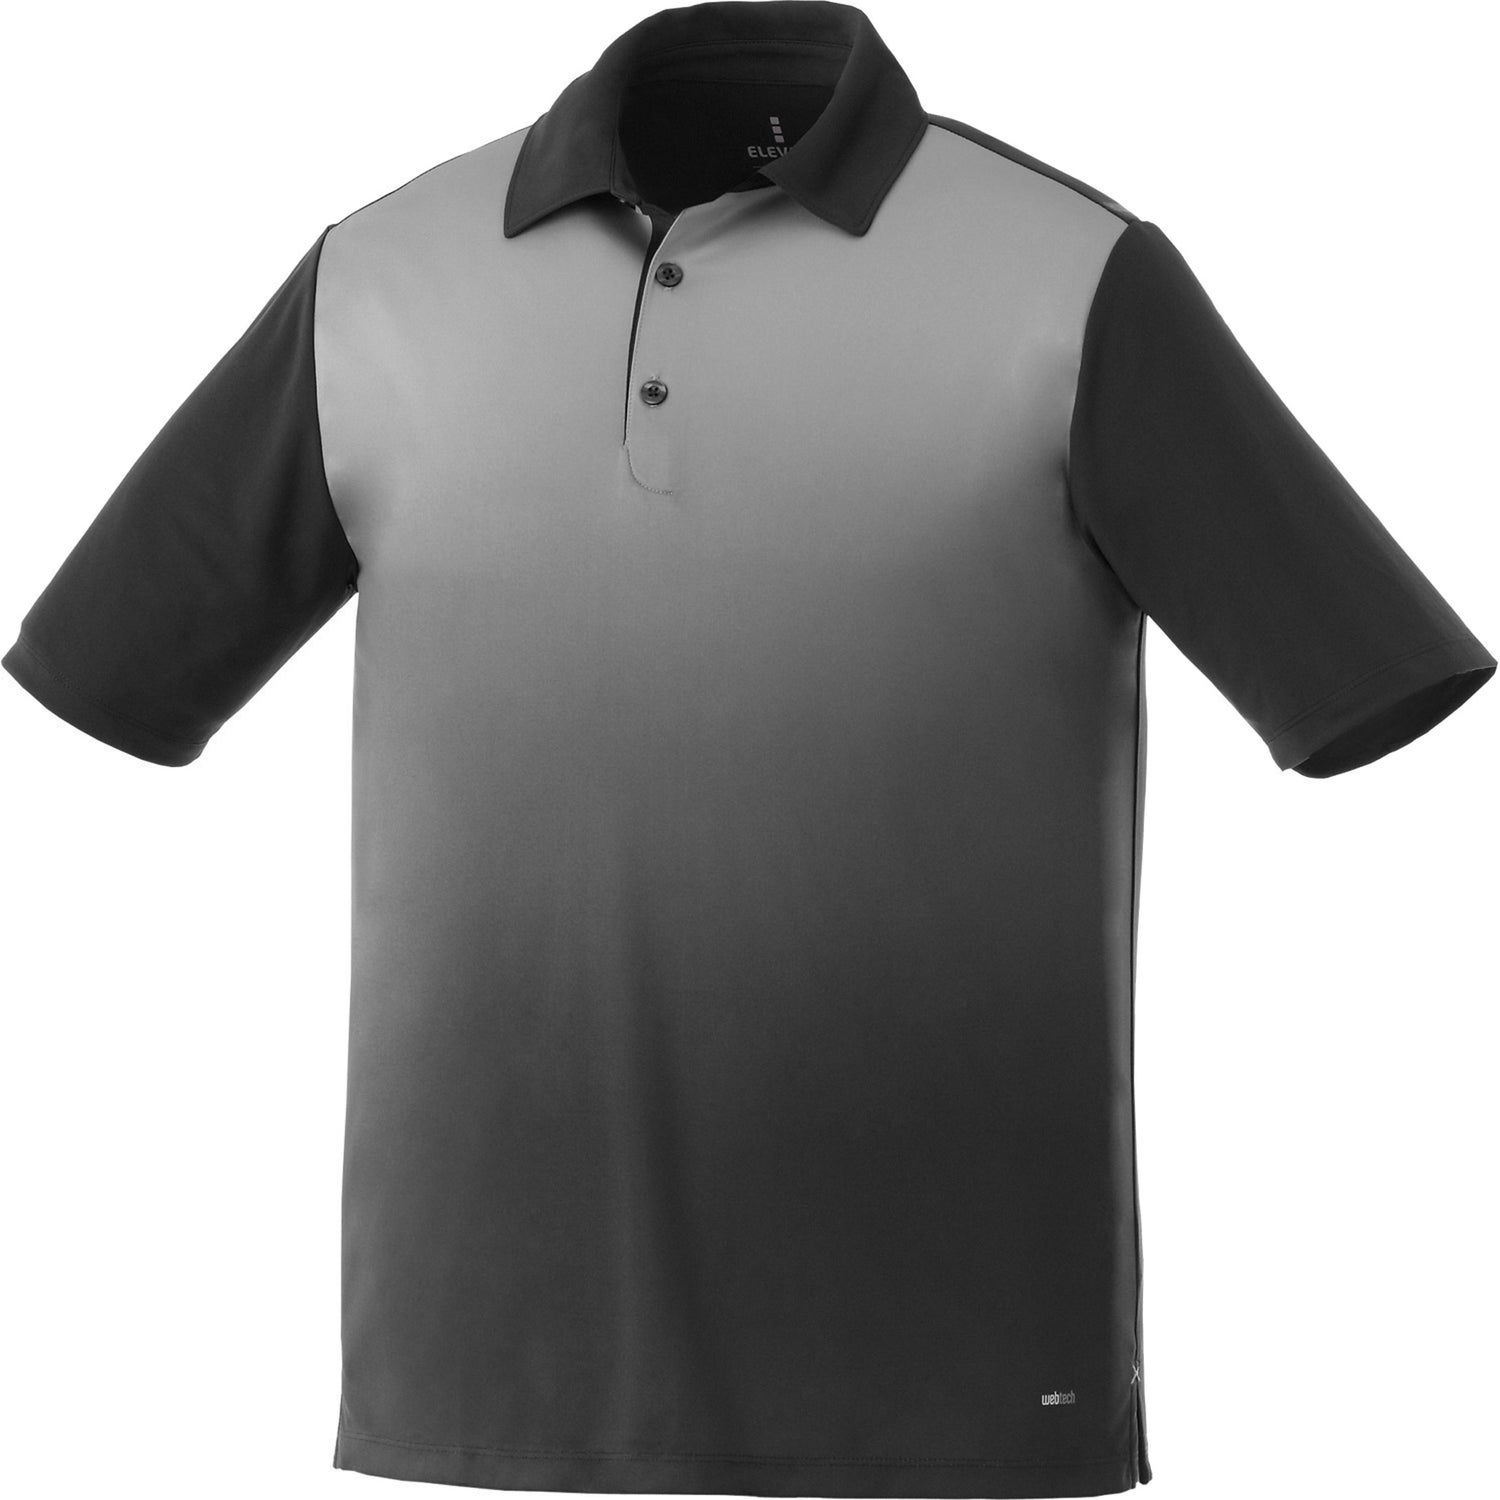 Promotional men 39 s next short sleeve polo shirt by trimarks for Quality polo shirts with company logo